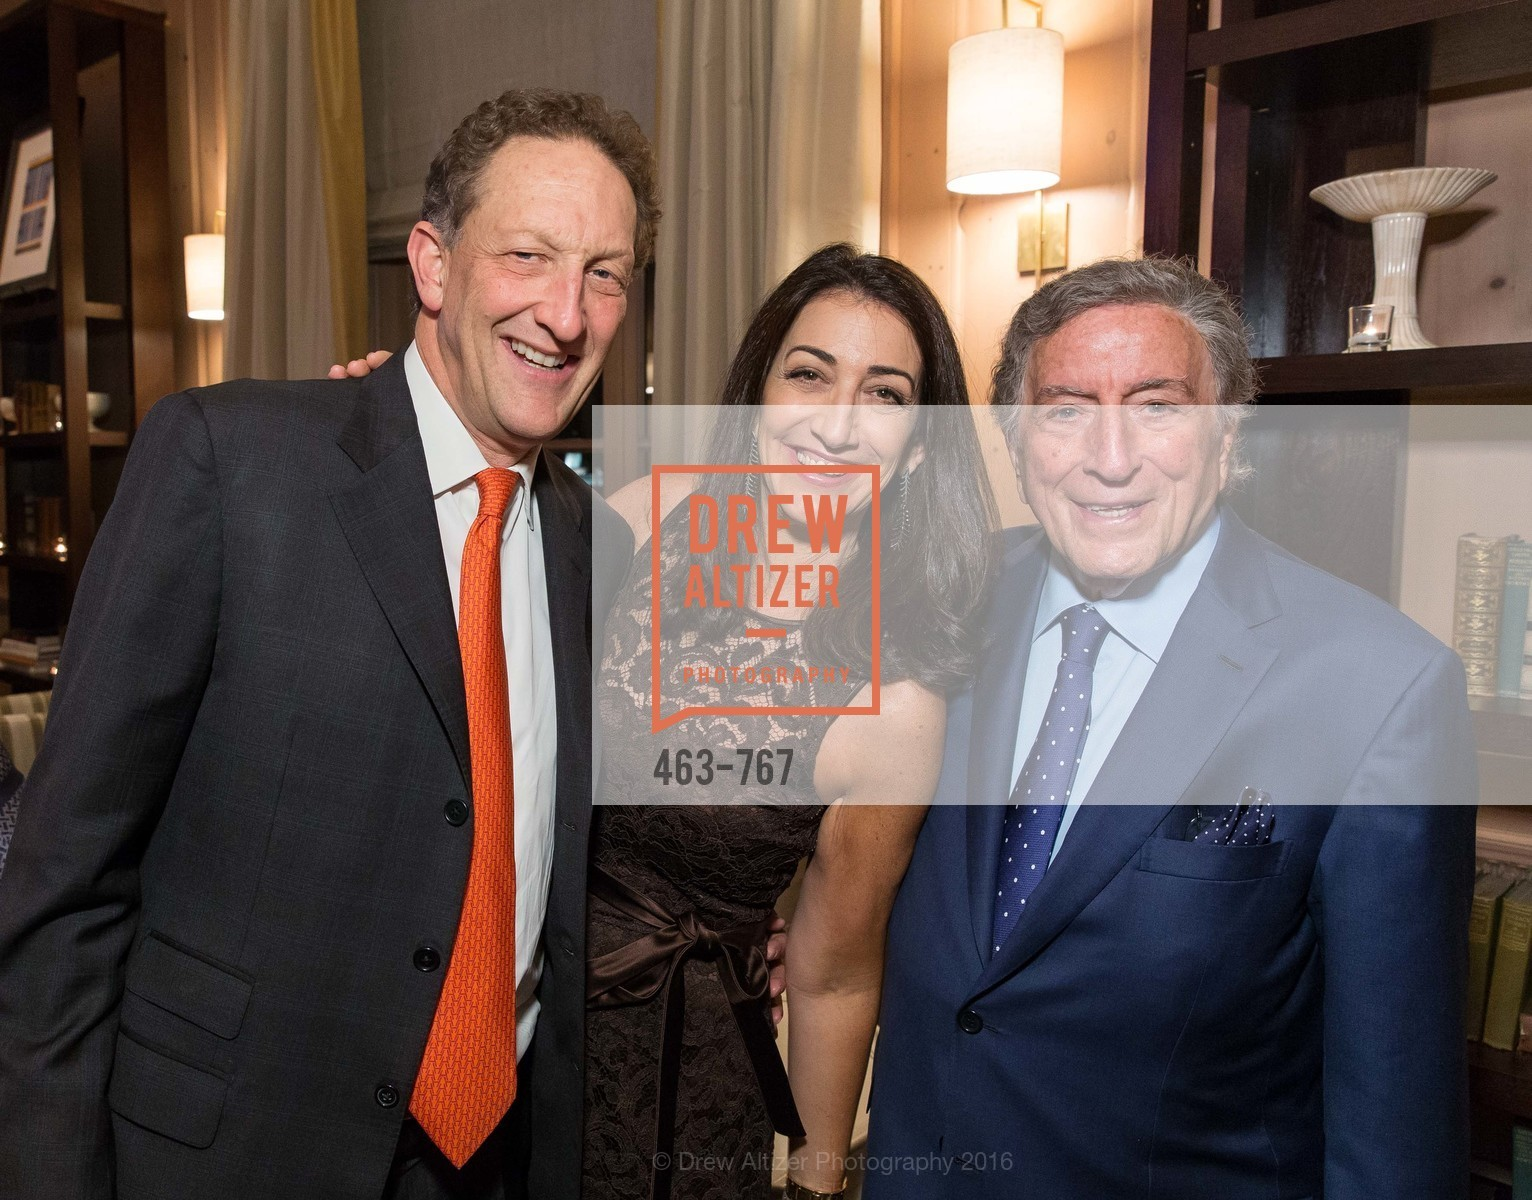 Larry Baer, Pam Baer, Tony Bennett, A Special Reception with Tony Bennett, The Fairmont, San Francisco, The Penthouse Suite, January 26th, 2016,Drew Altizer, Drew Altizer Photography, full-service agency, private events, San Francisco photographer, photographer california